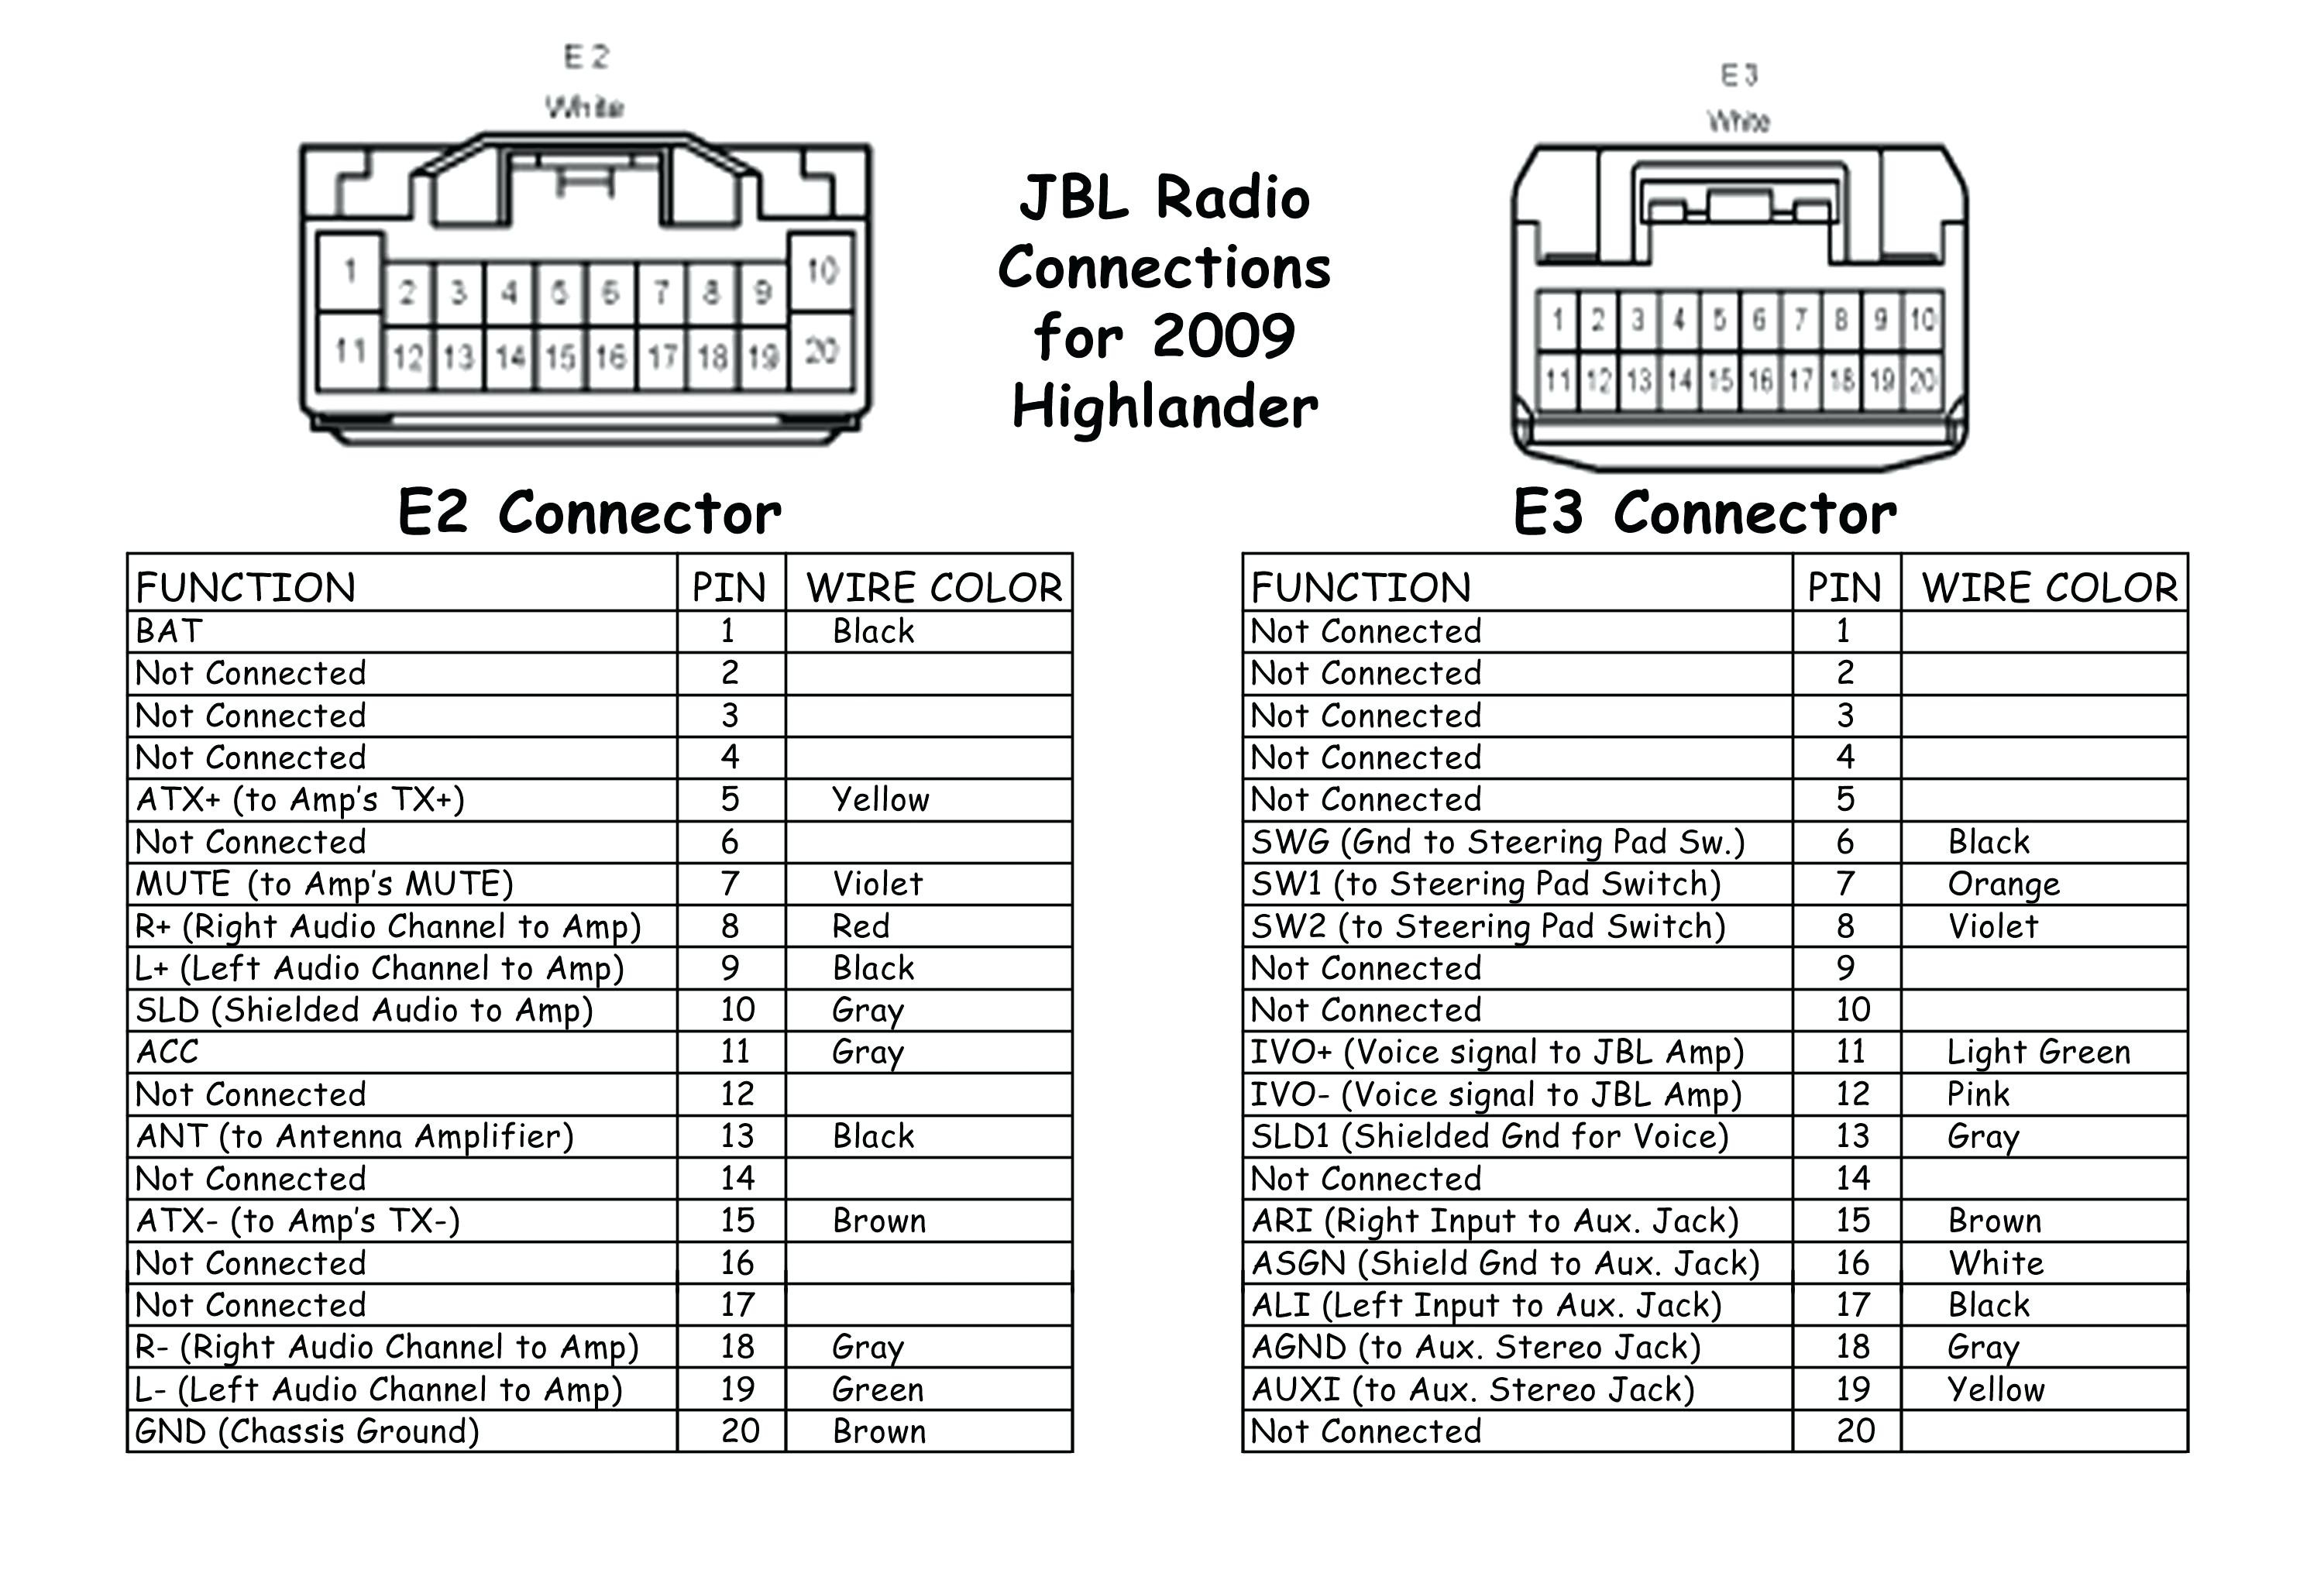 wiring diagram for radio 1996 ford explorer 2001 ranger car stereo jbl collection